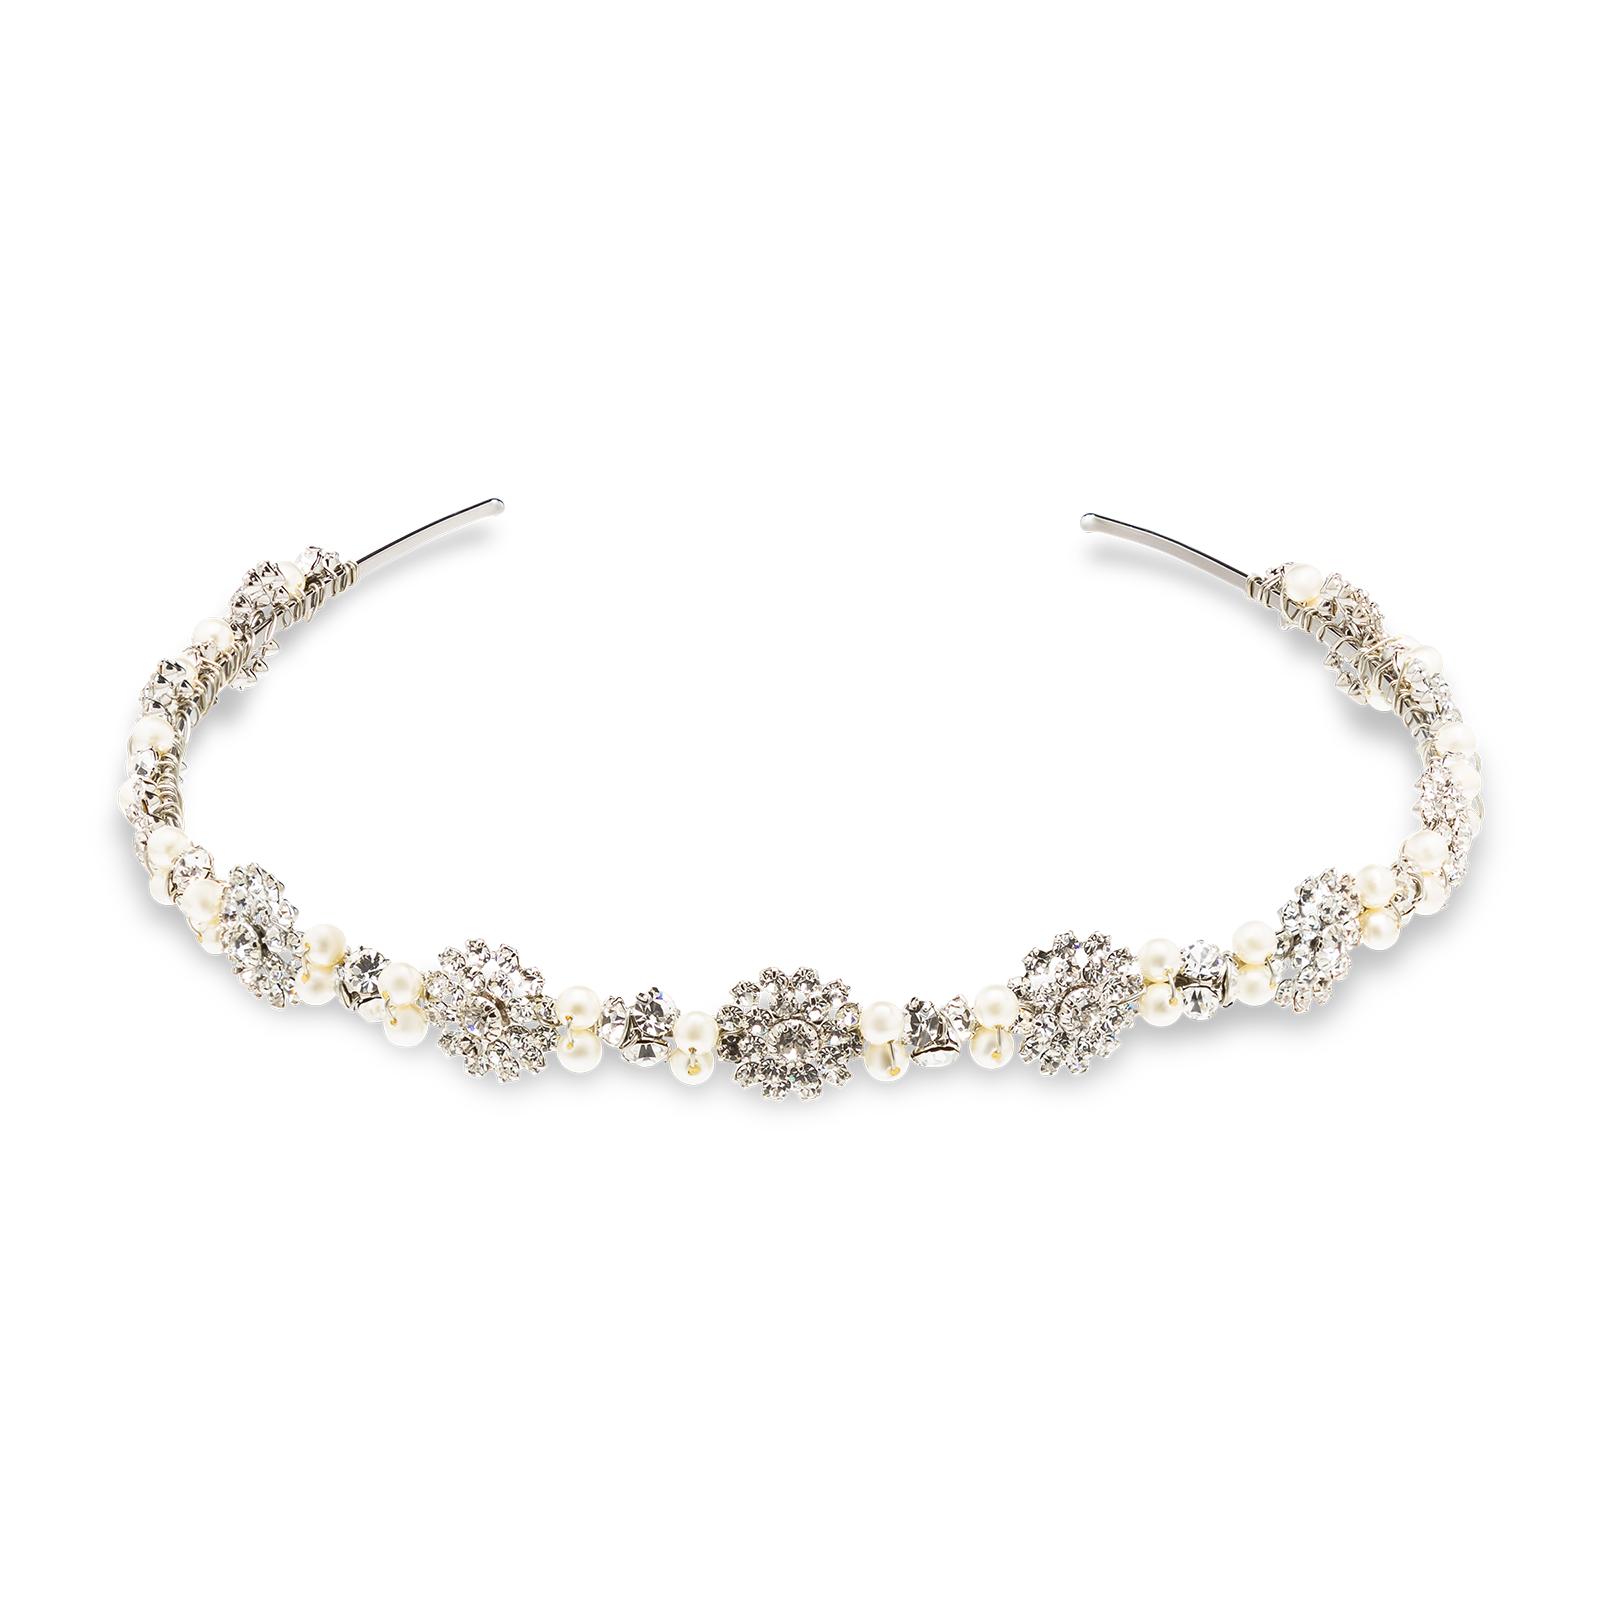 Tiara product picture